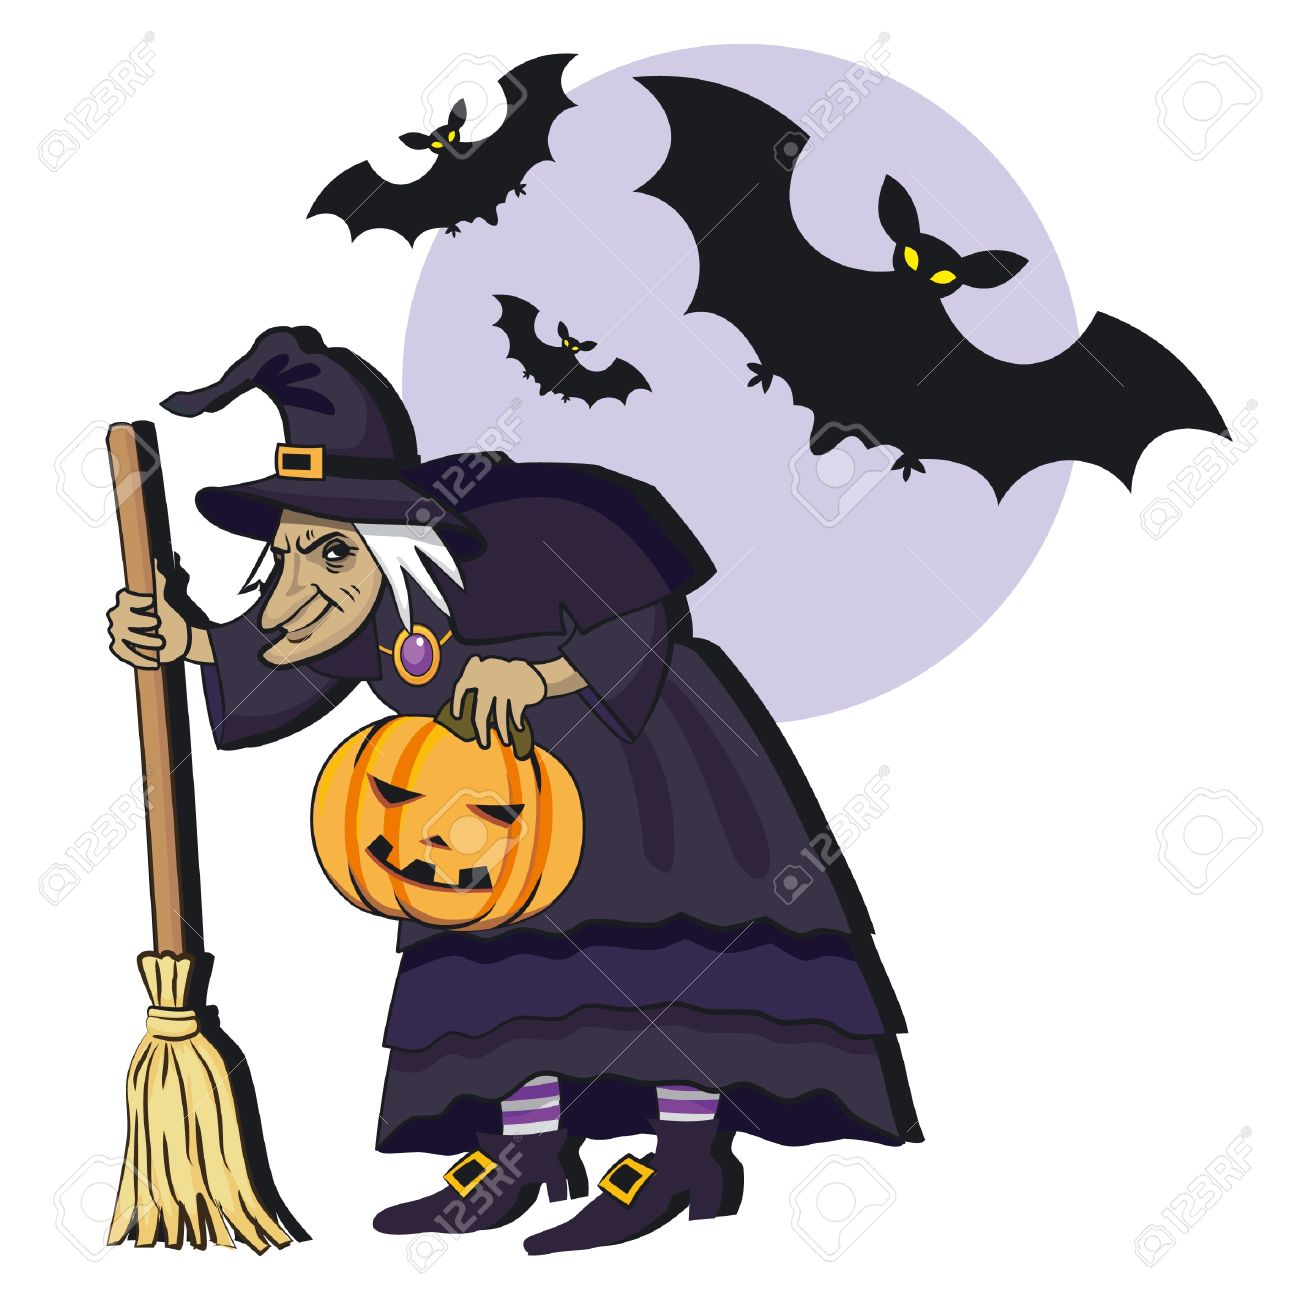 Old Witch With Broom; Cartoon Vector Illustation Royalty Free.